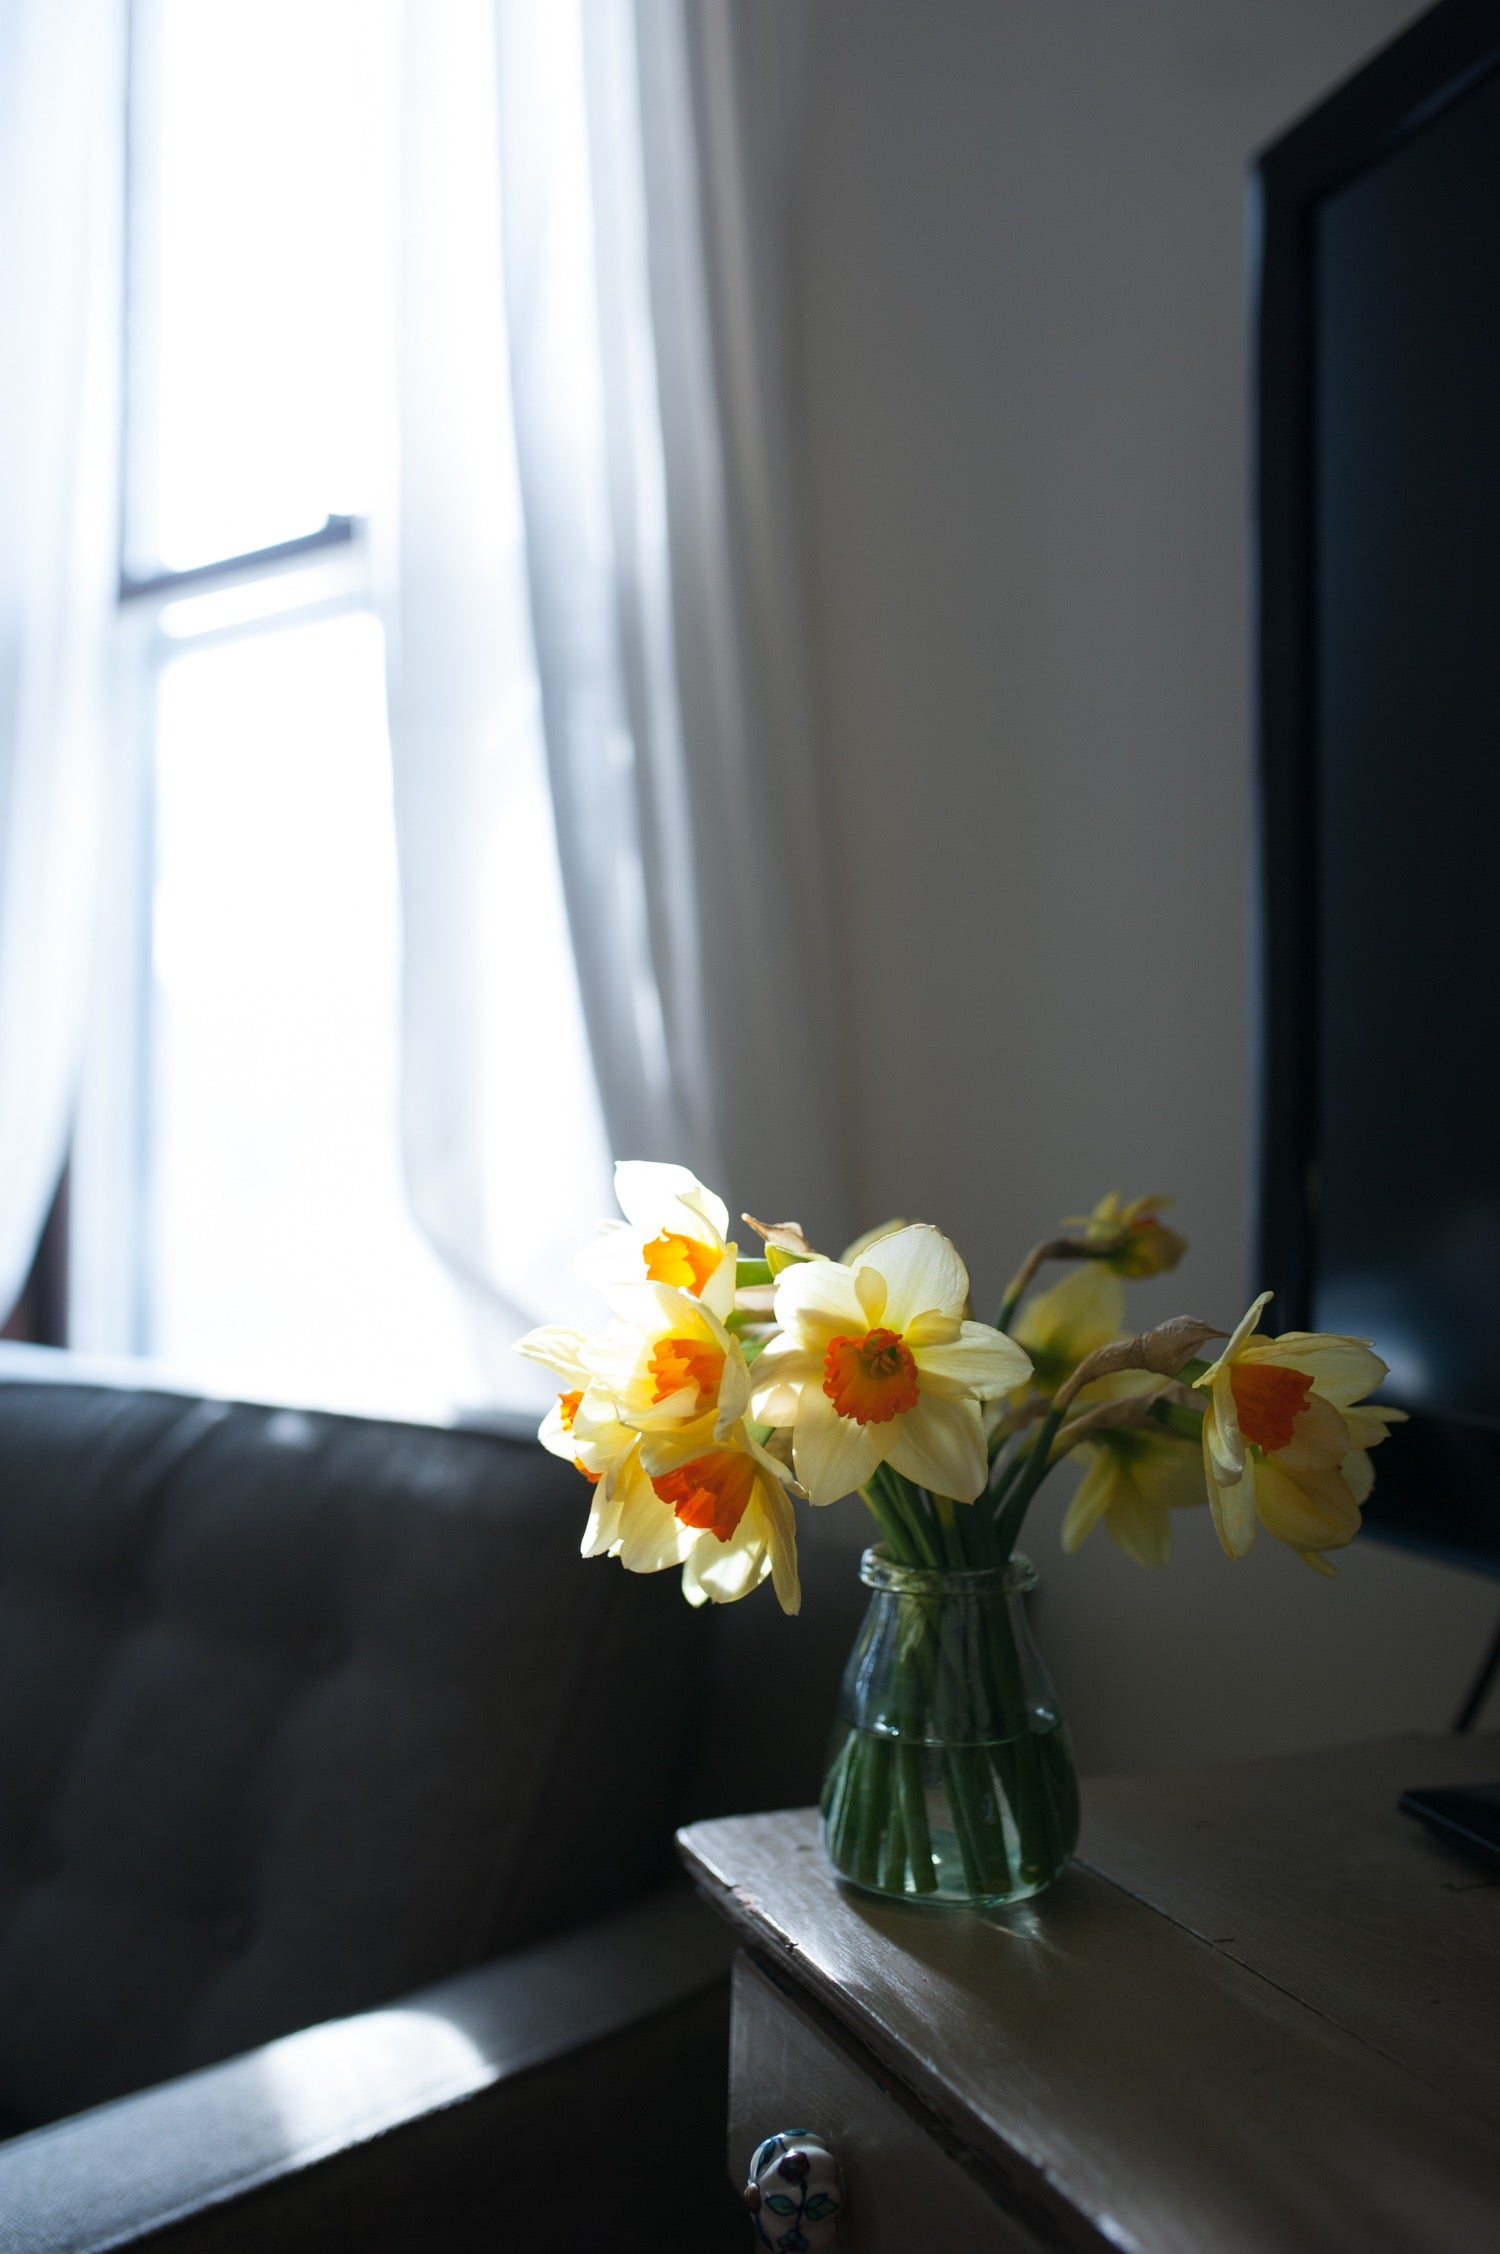 Fresh picked spring blooms in a hand blown glass vase and natural light pouring in the window.